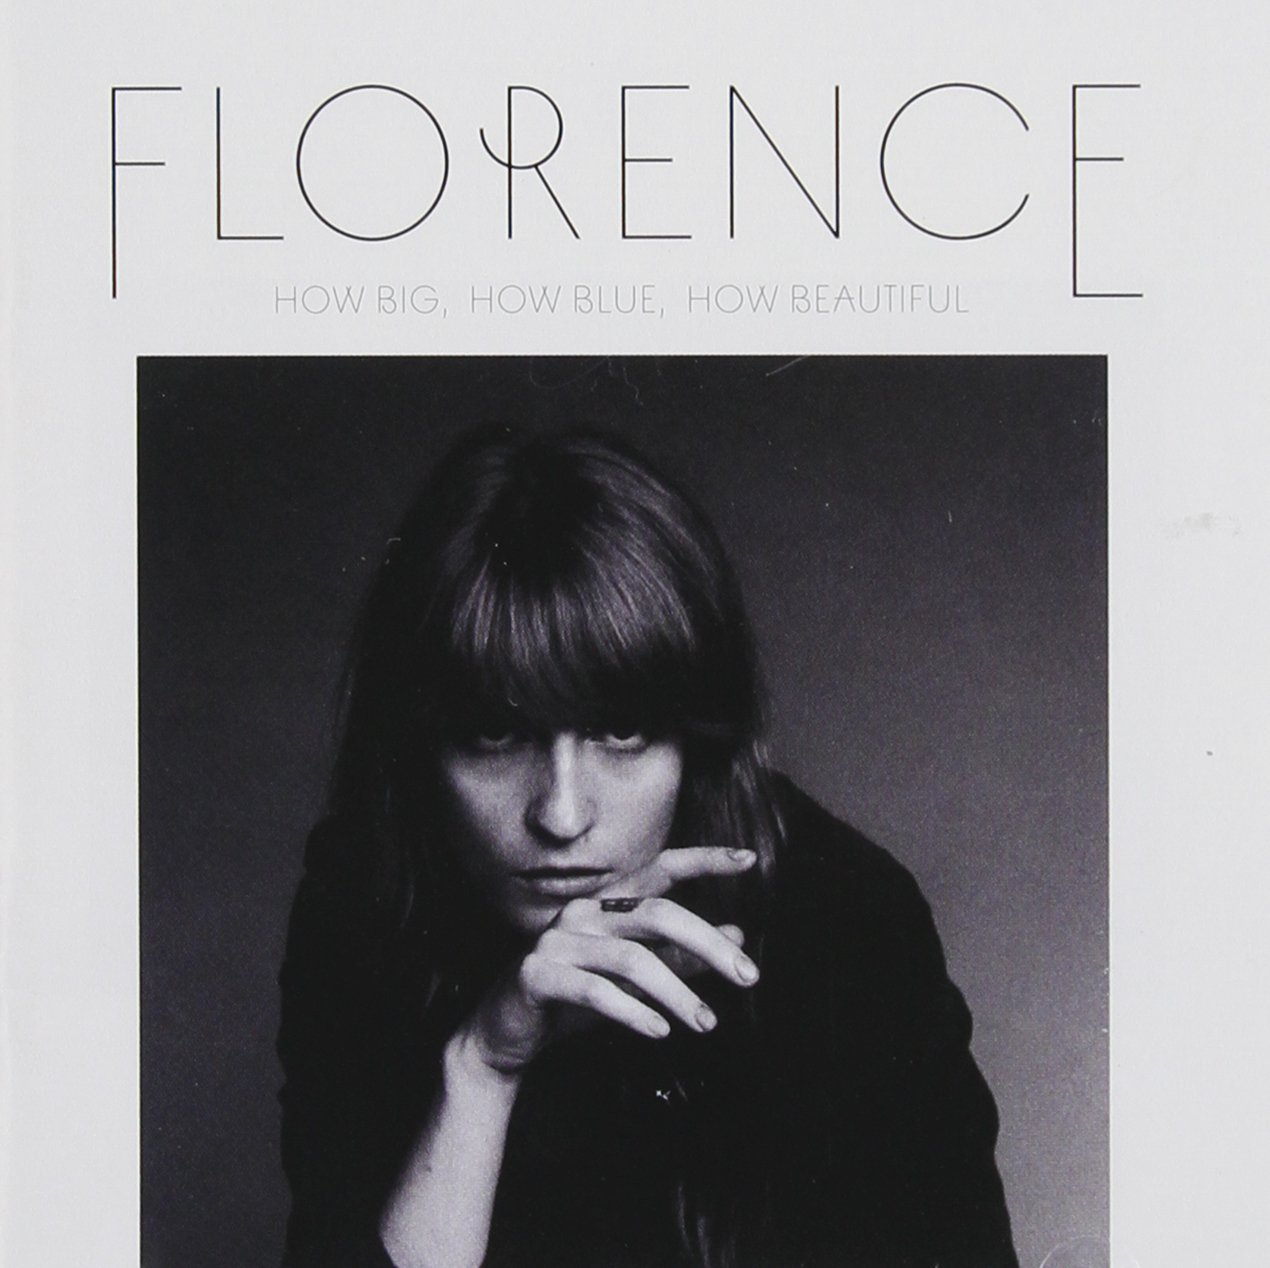 florence  the machine - how big how blue how beautiful.jpg - 137.20 KB